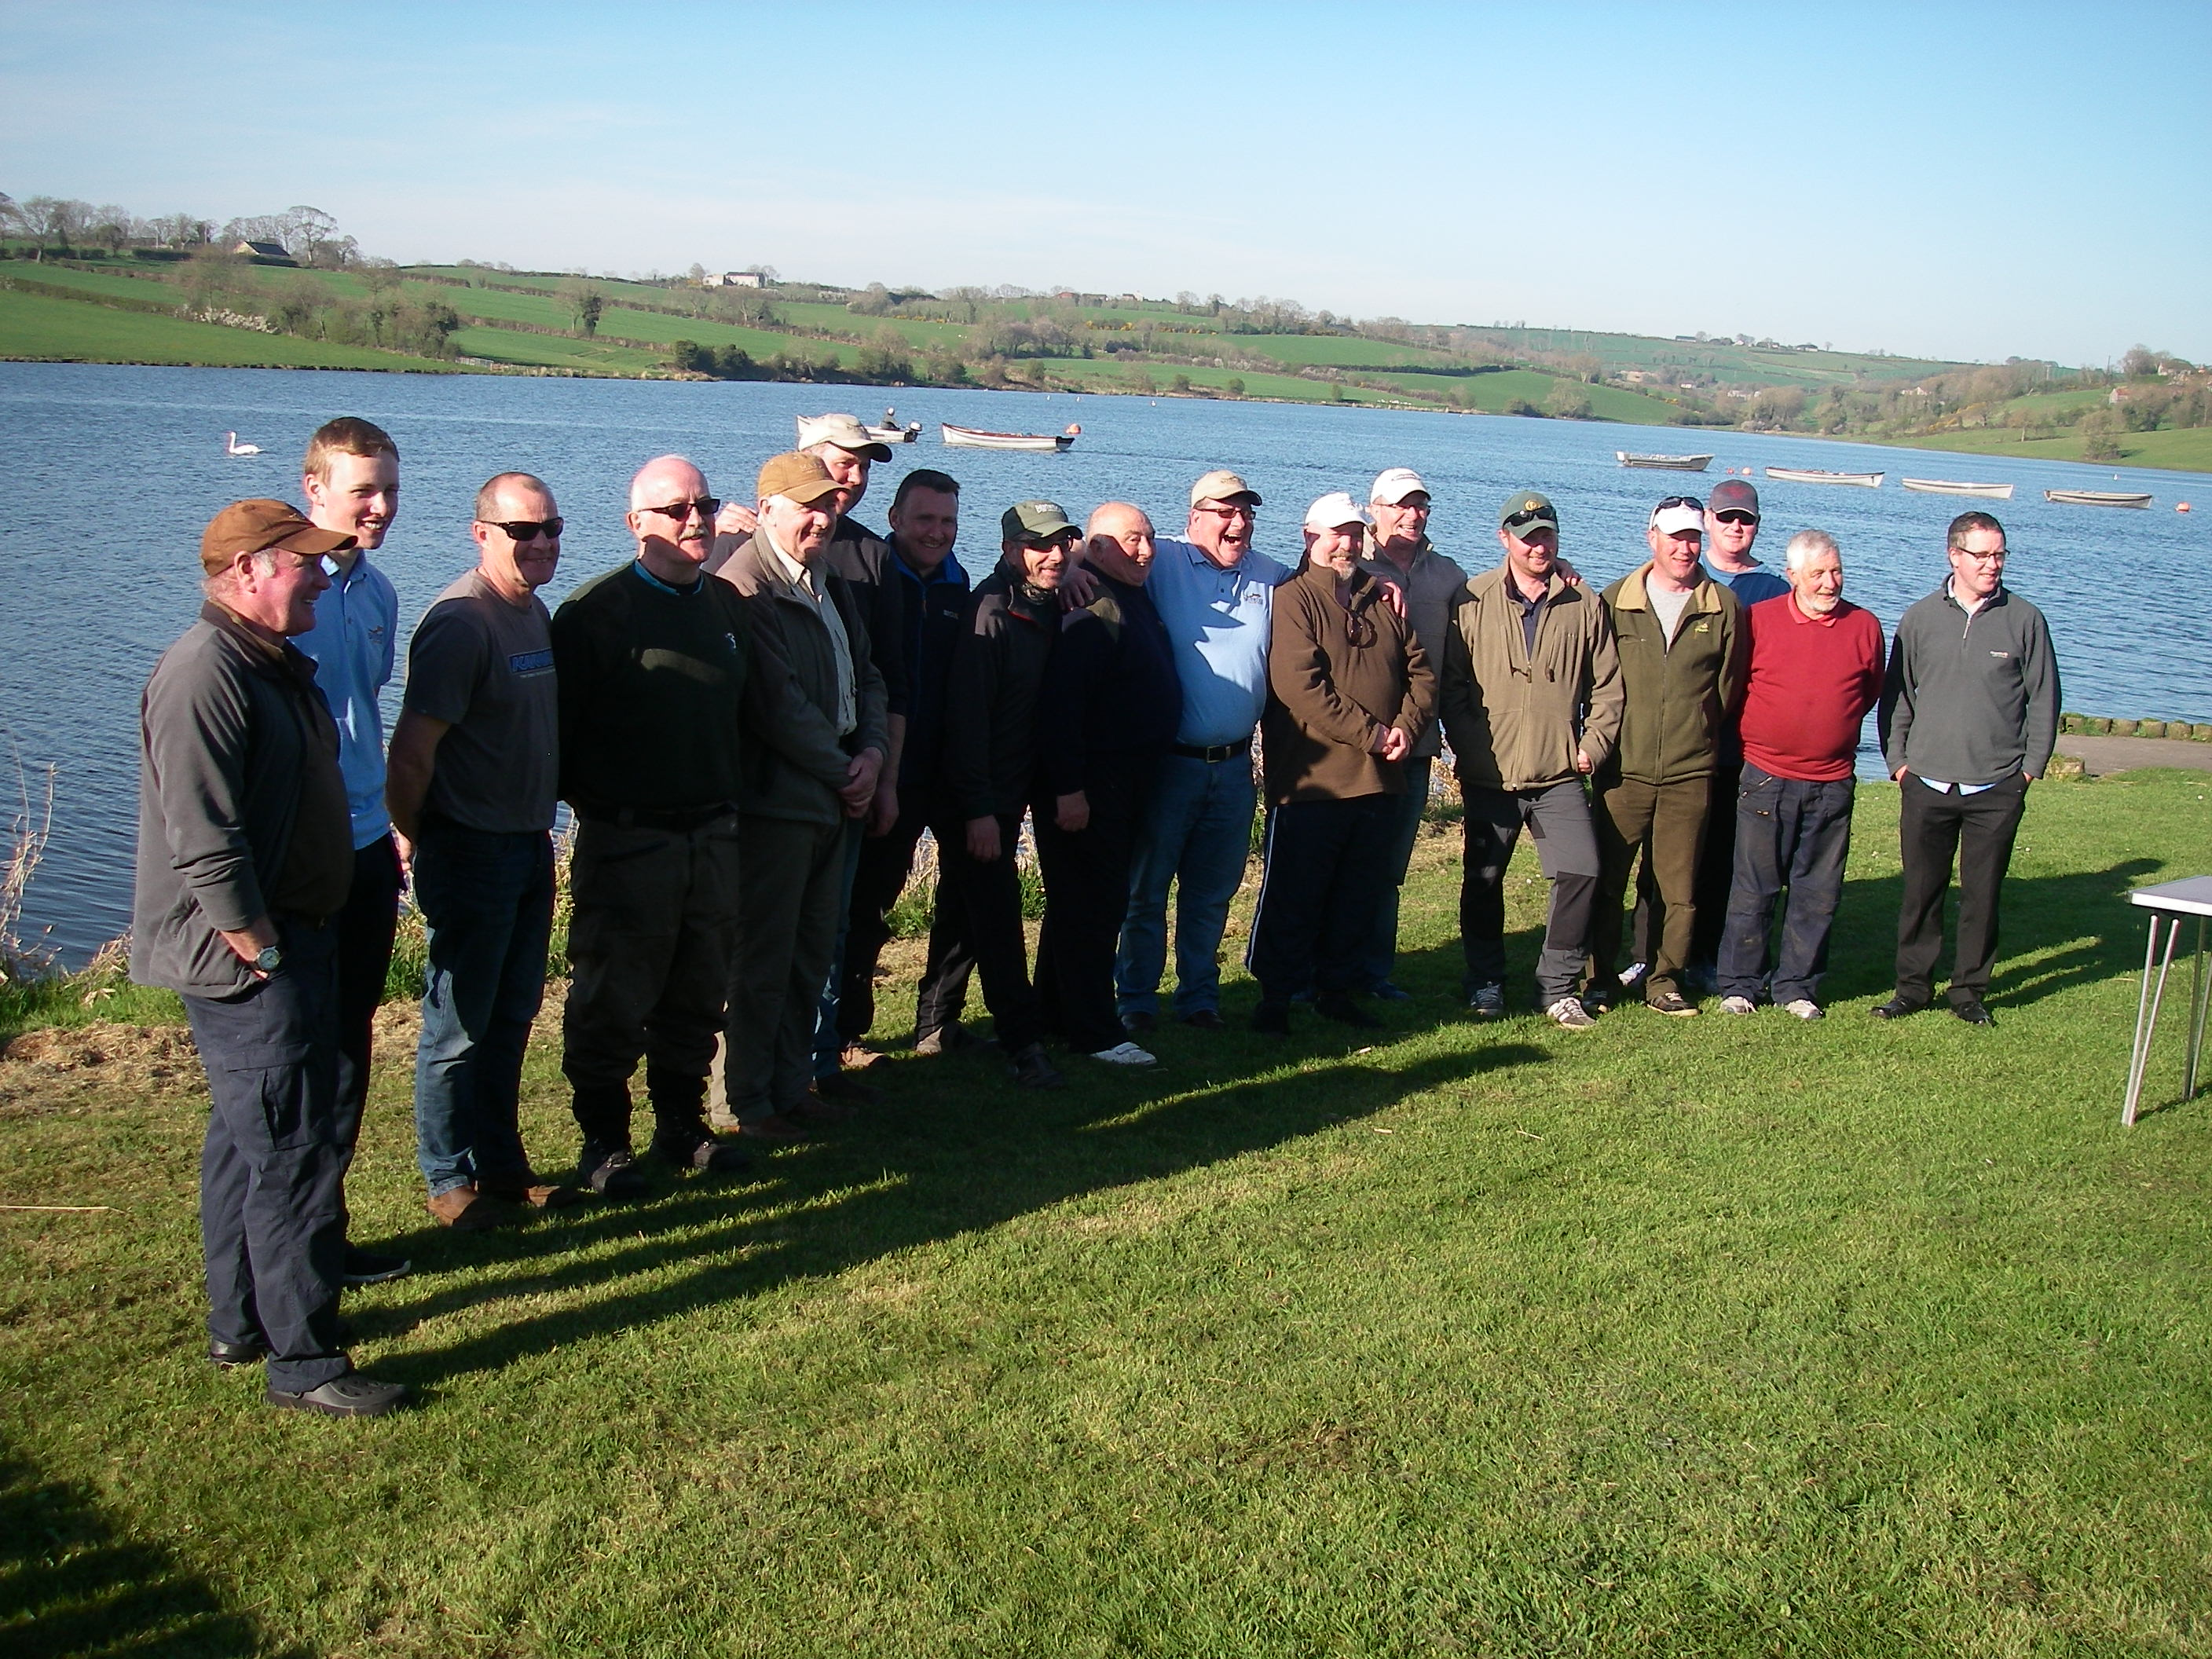 BAC Friendship Cup Corbet Lough 8 April 2017 - Armagh and Banbridge anglers pose for a photograph at Corbet Lough